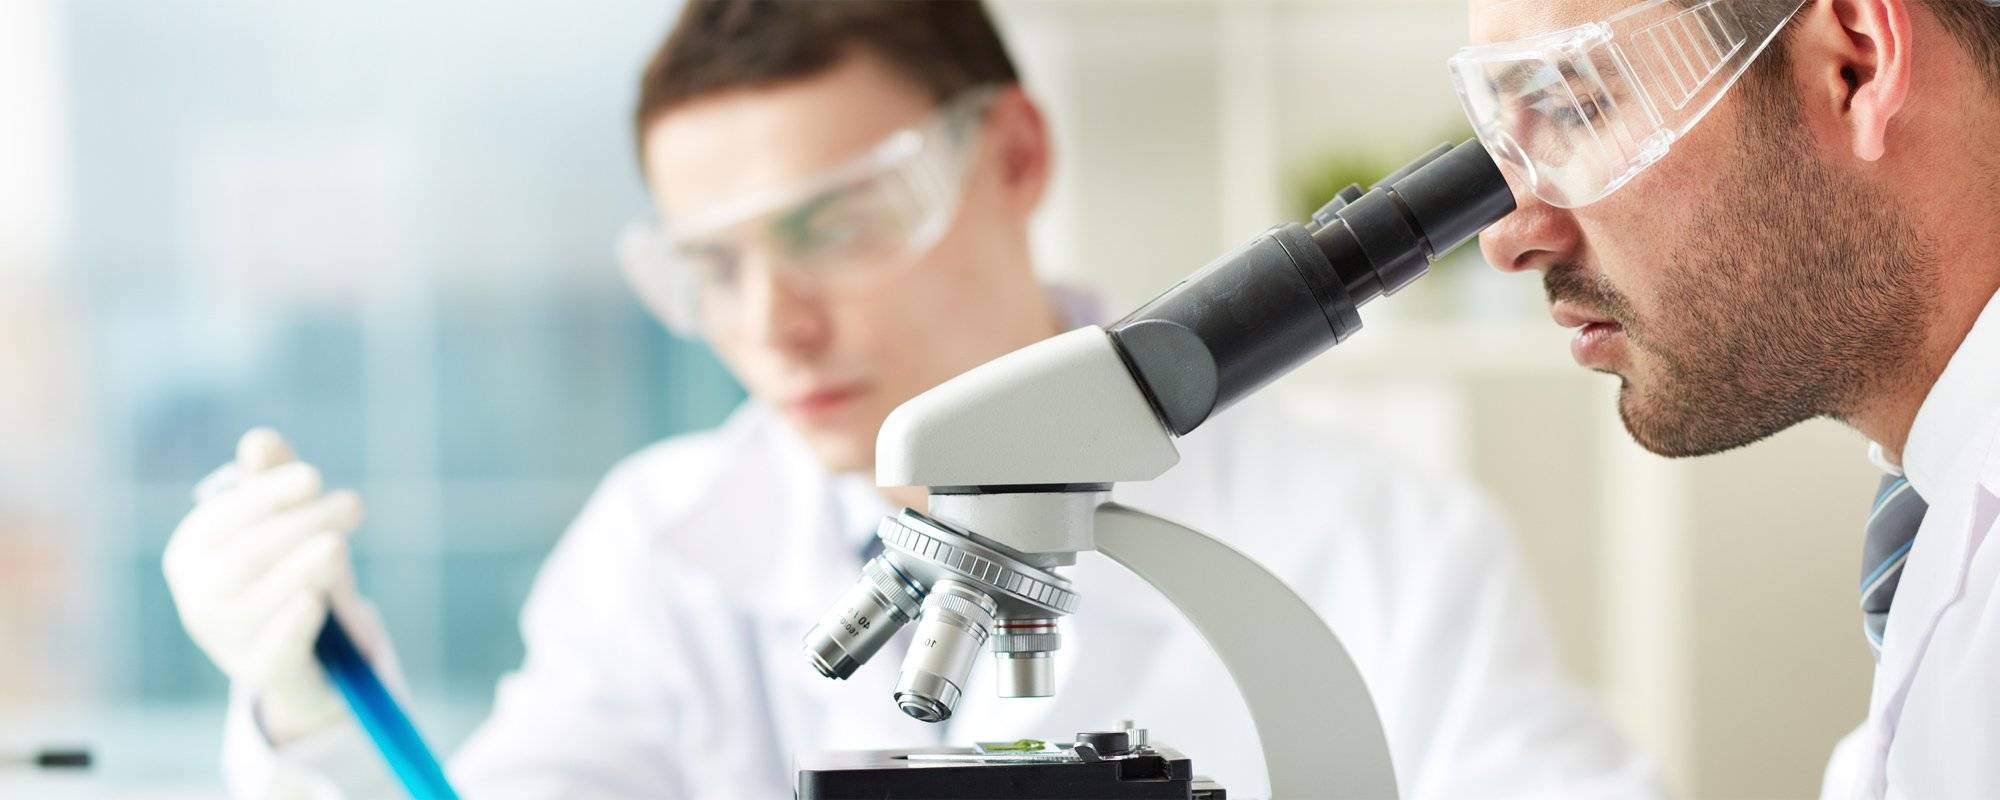 Professional Medical Doctor Using Microscope